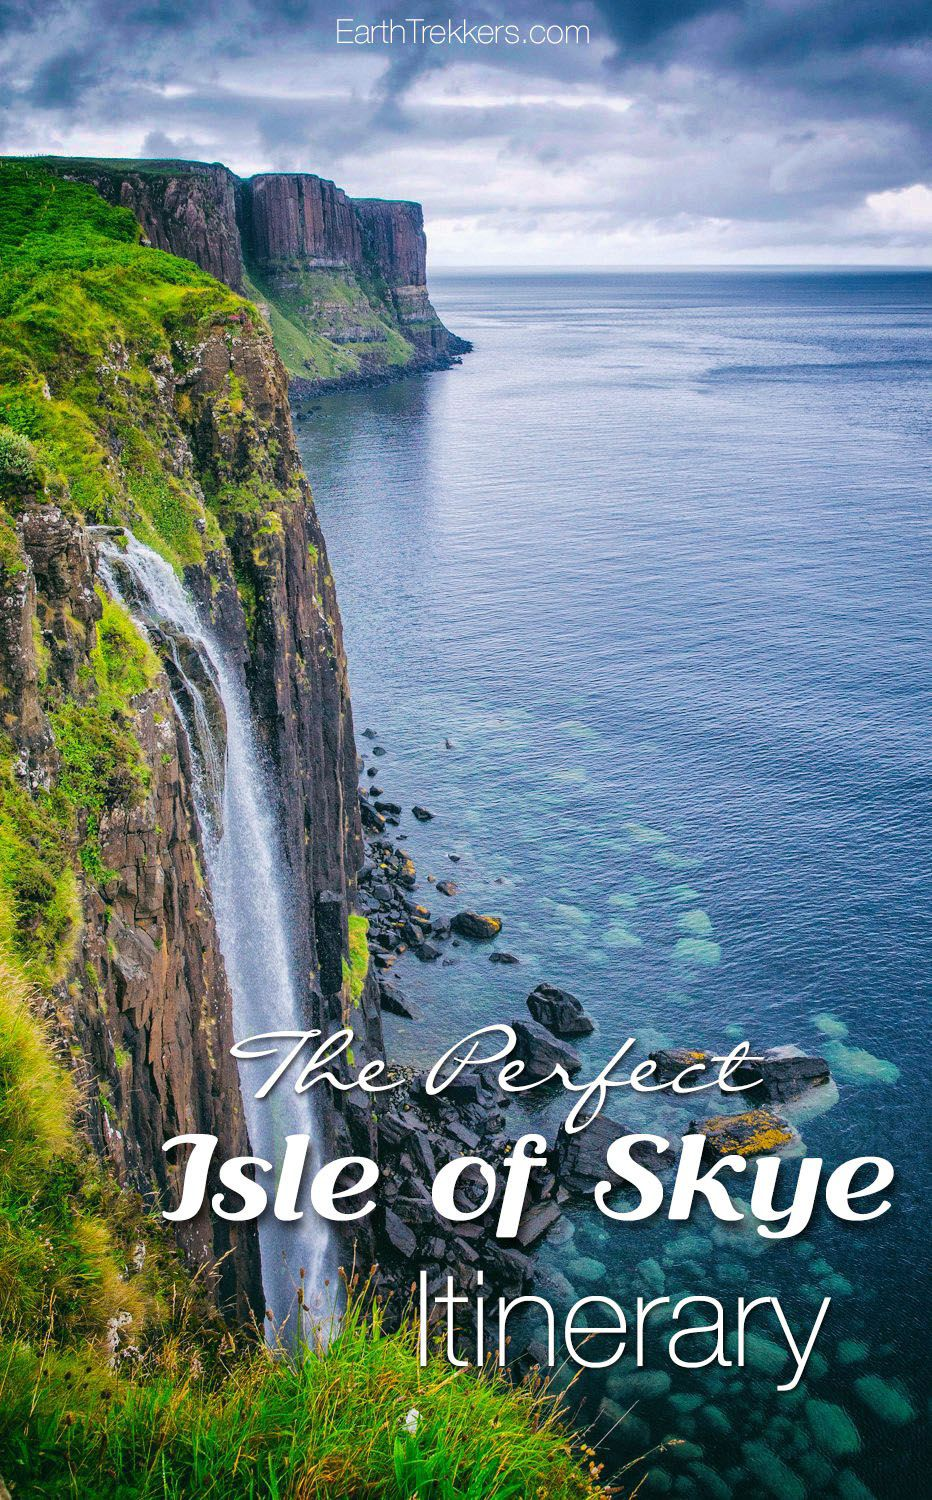 Plan the perfect Isle of Skye itinerary